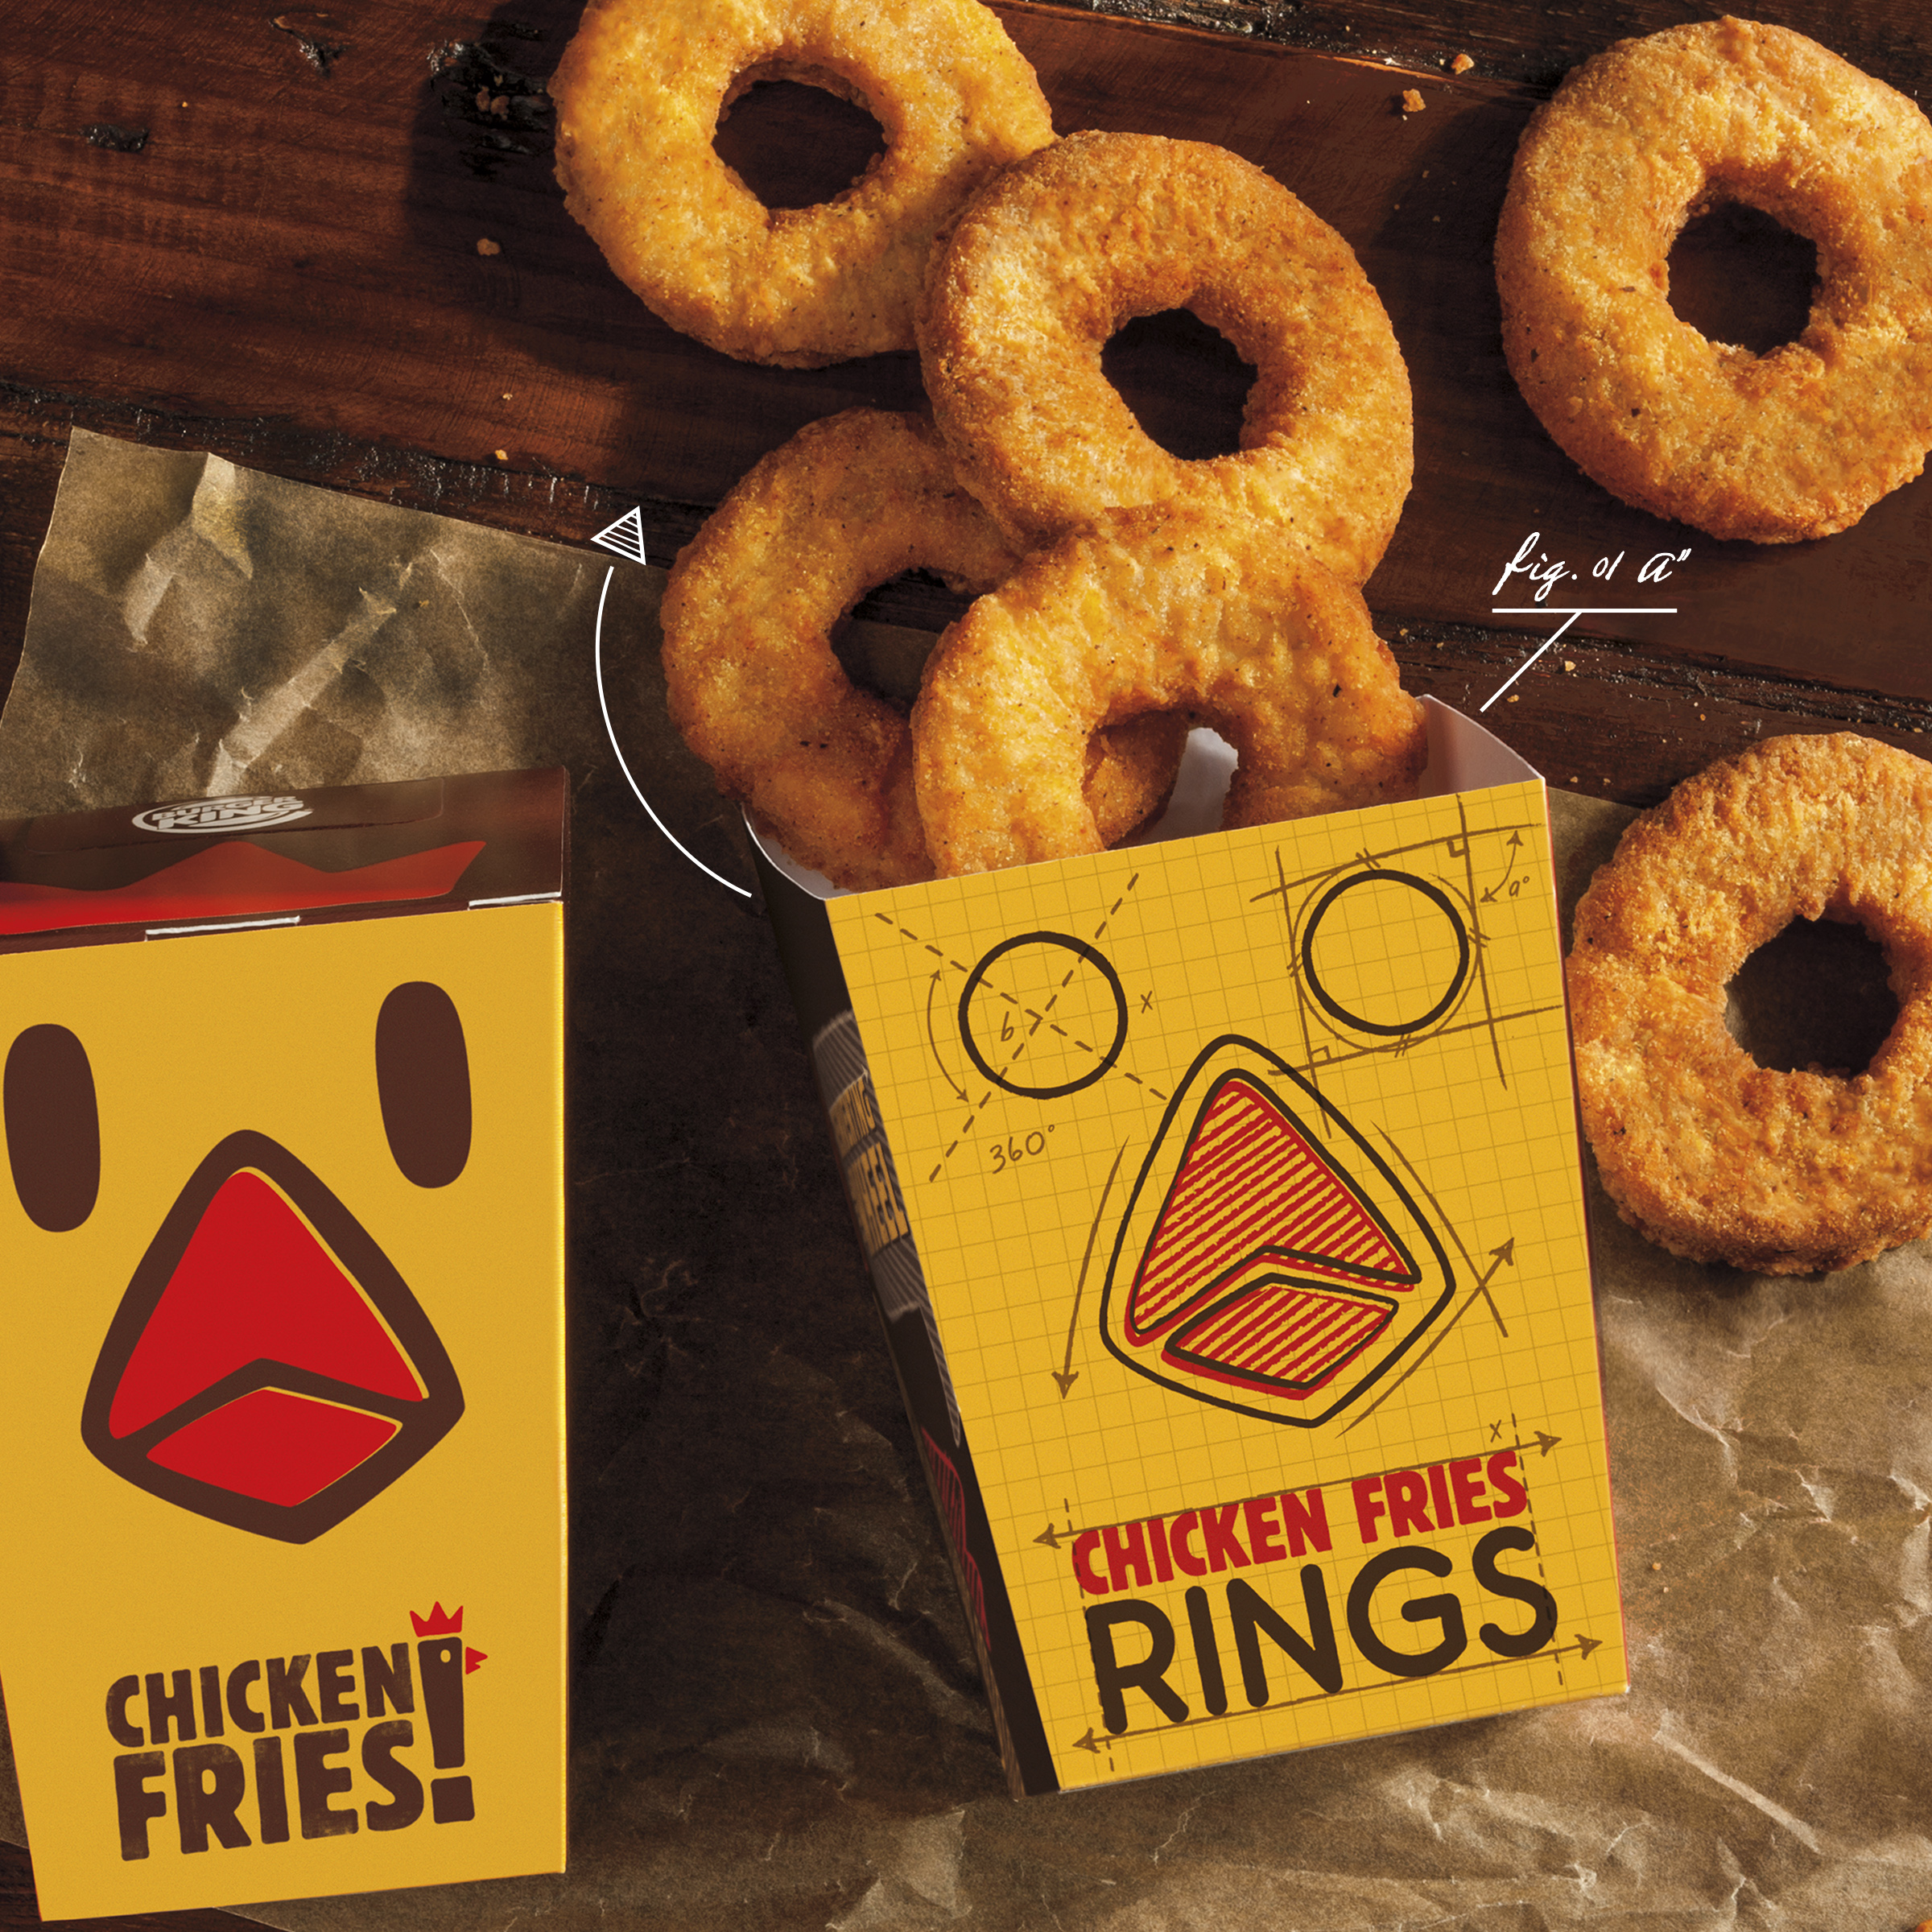 Burger King is introducing Chicken Fries Rings as a limited-time offering.